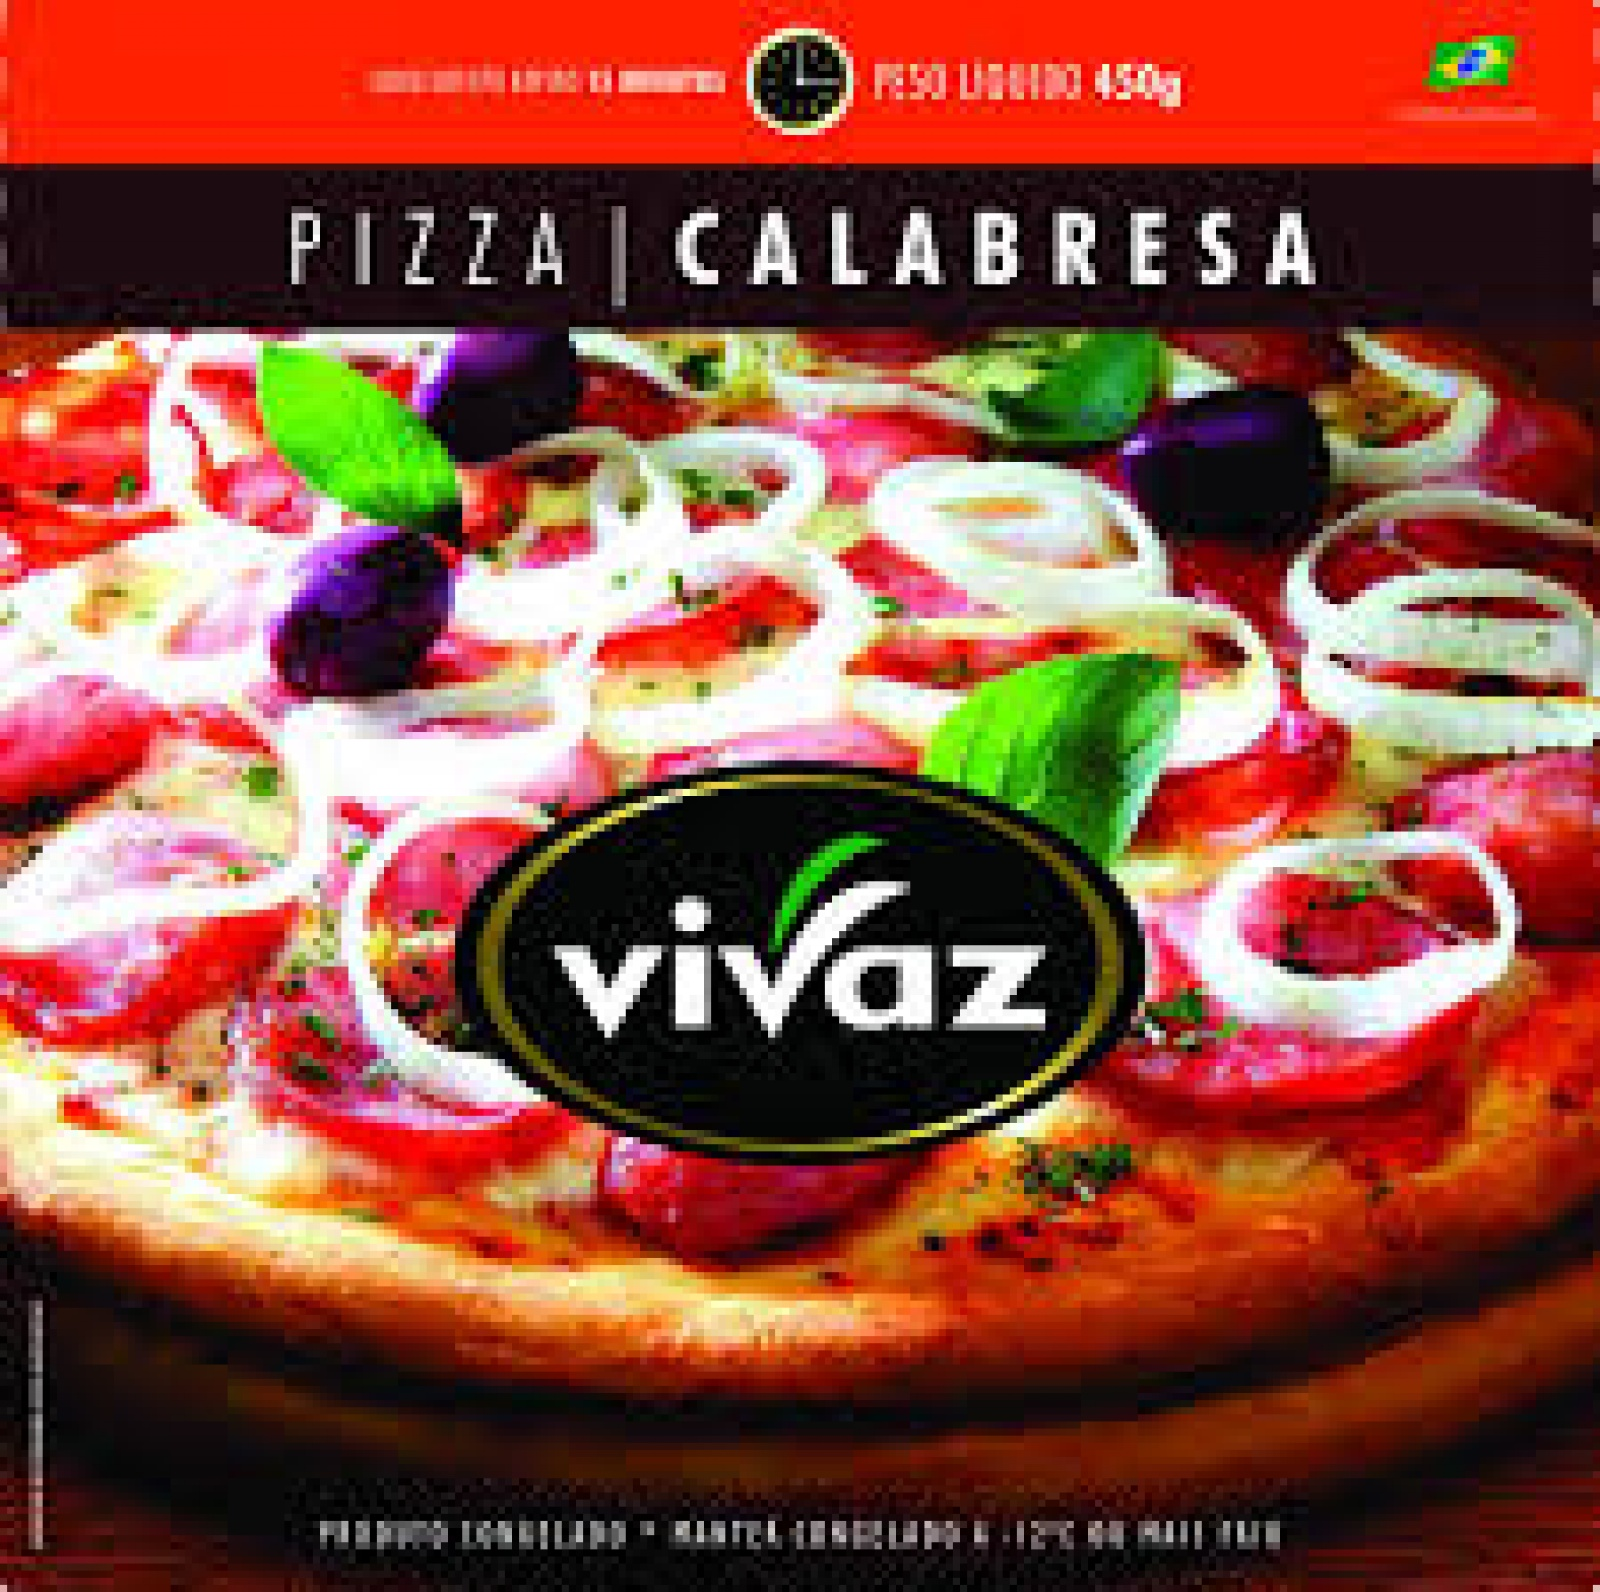 Pizza Calabresa 450g